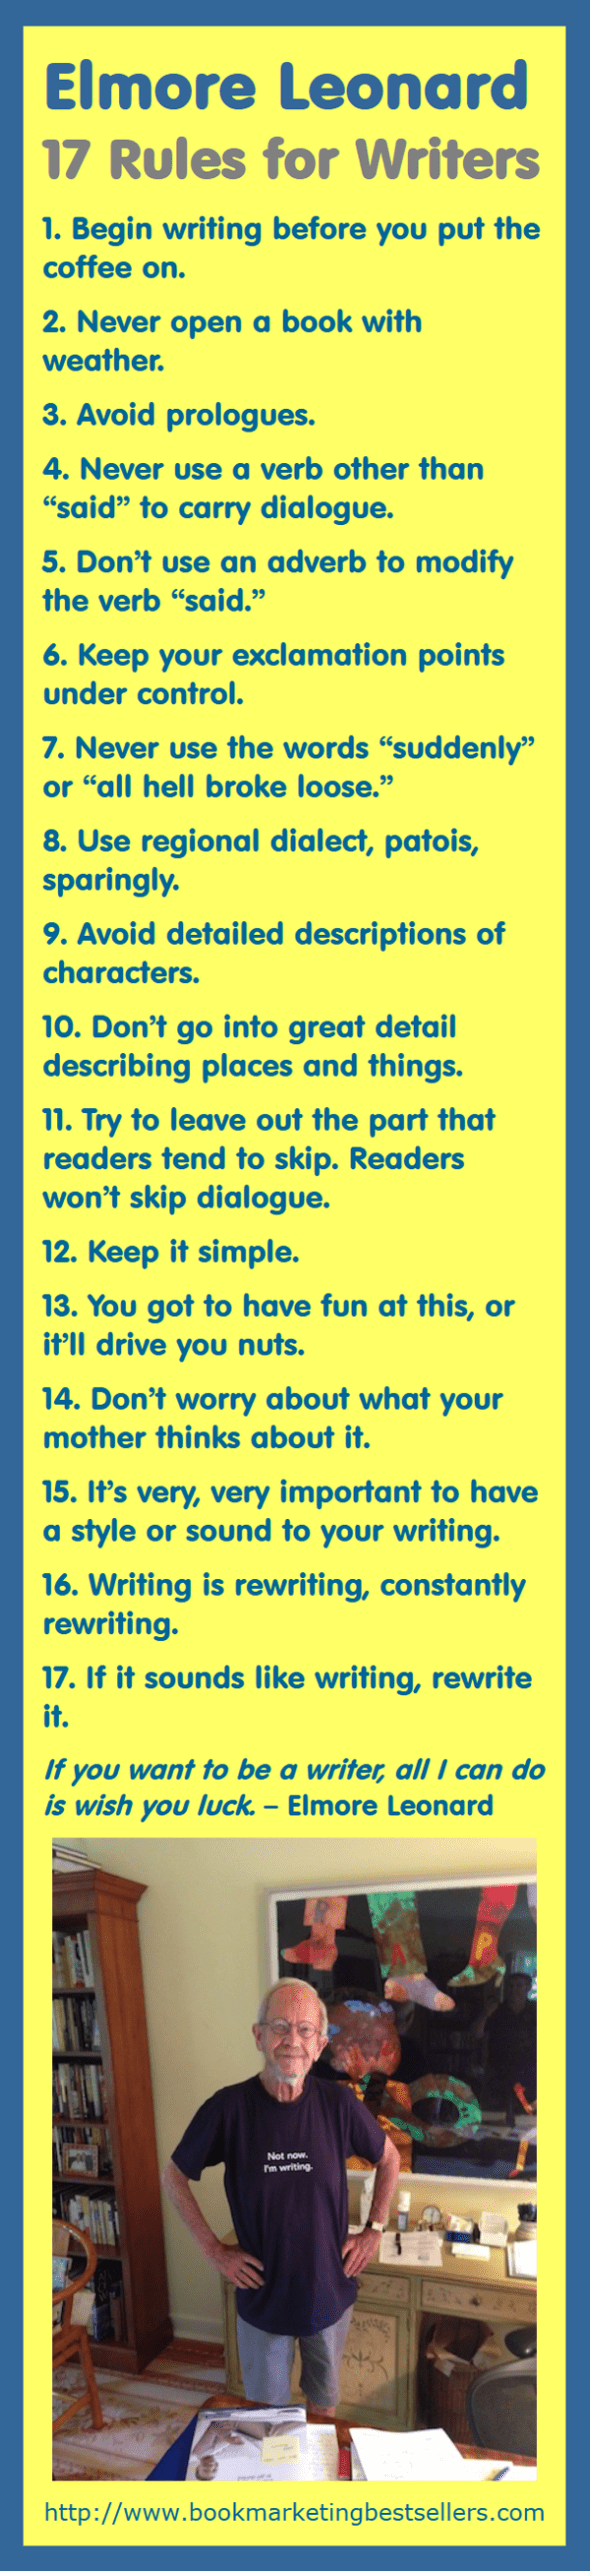 Elmore Leonard: 17 Rules for Writers